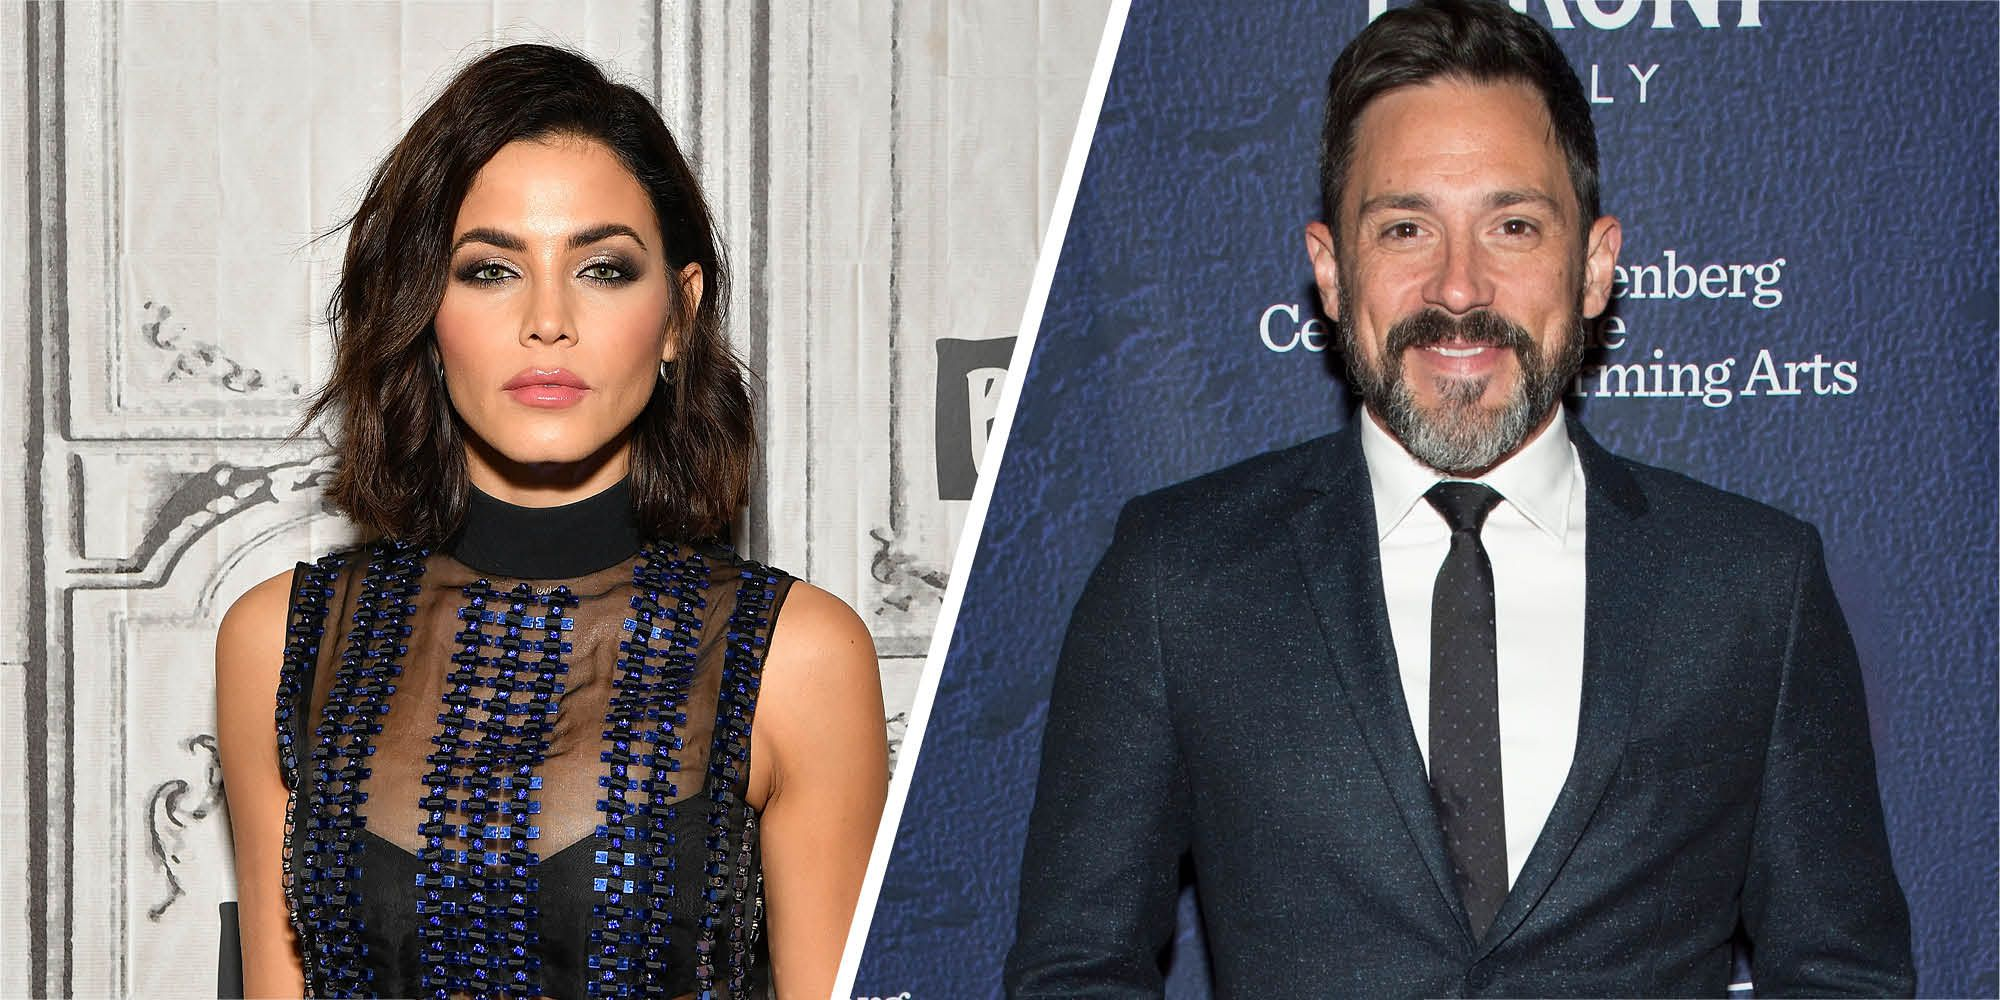 Jenna Dewan and boyfriend Steve Kazee are now Instagram official